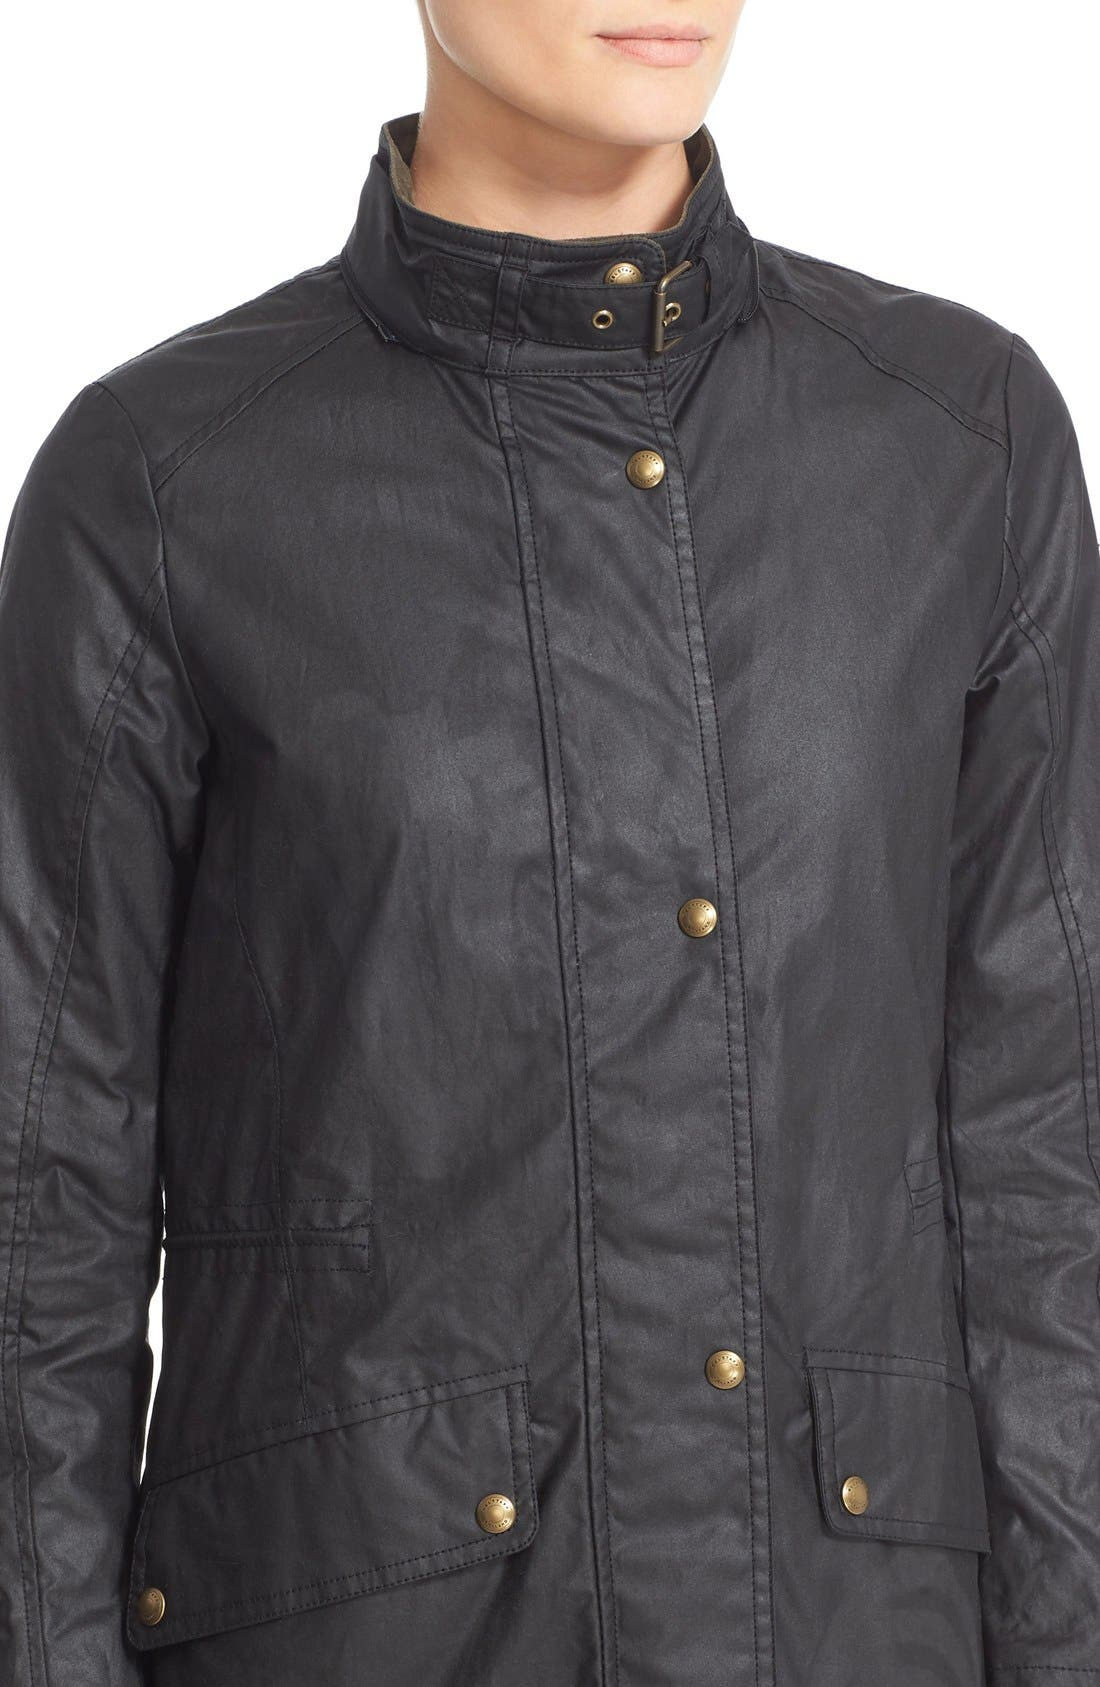 Wembury Waxed Cotton Jacket,                             Alternate thumbnail 6, color,                             001